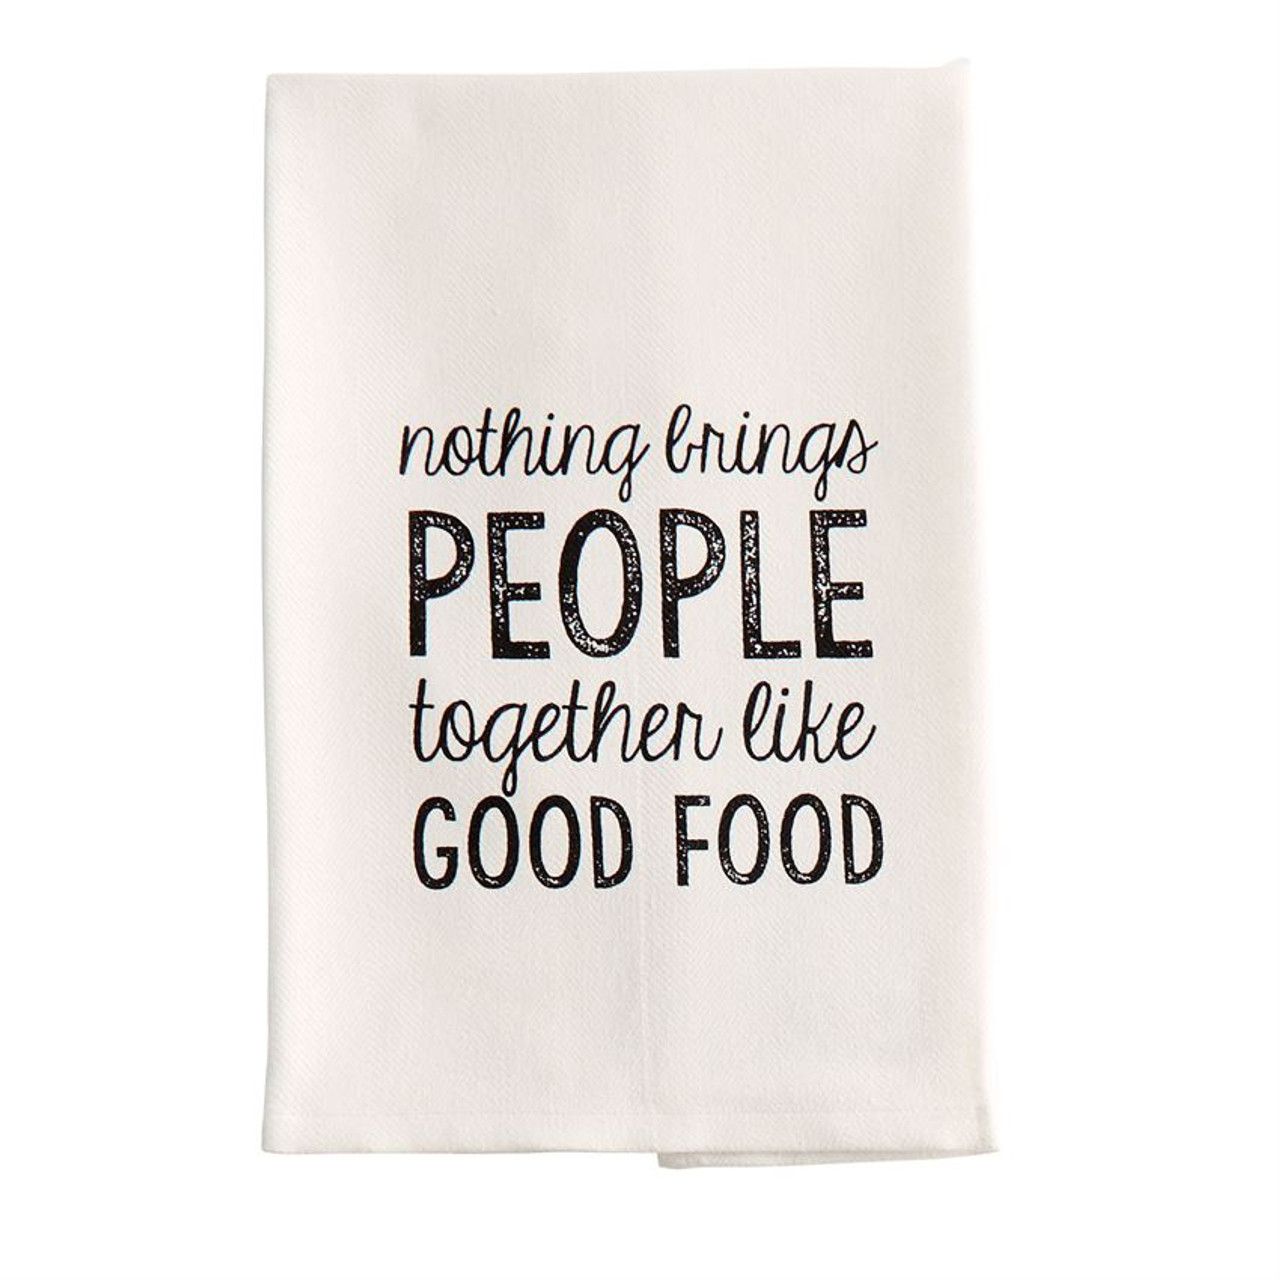 Add Some Humor To Your Kitchen With This Mud Pie Woven Cotton Hand/dish  Towel